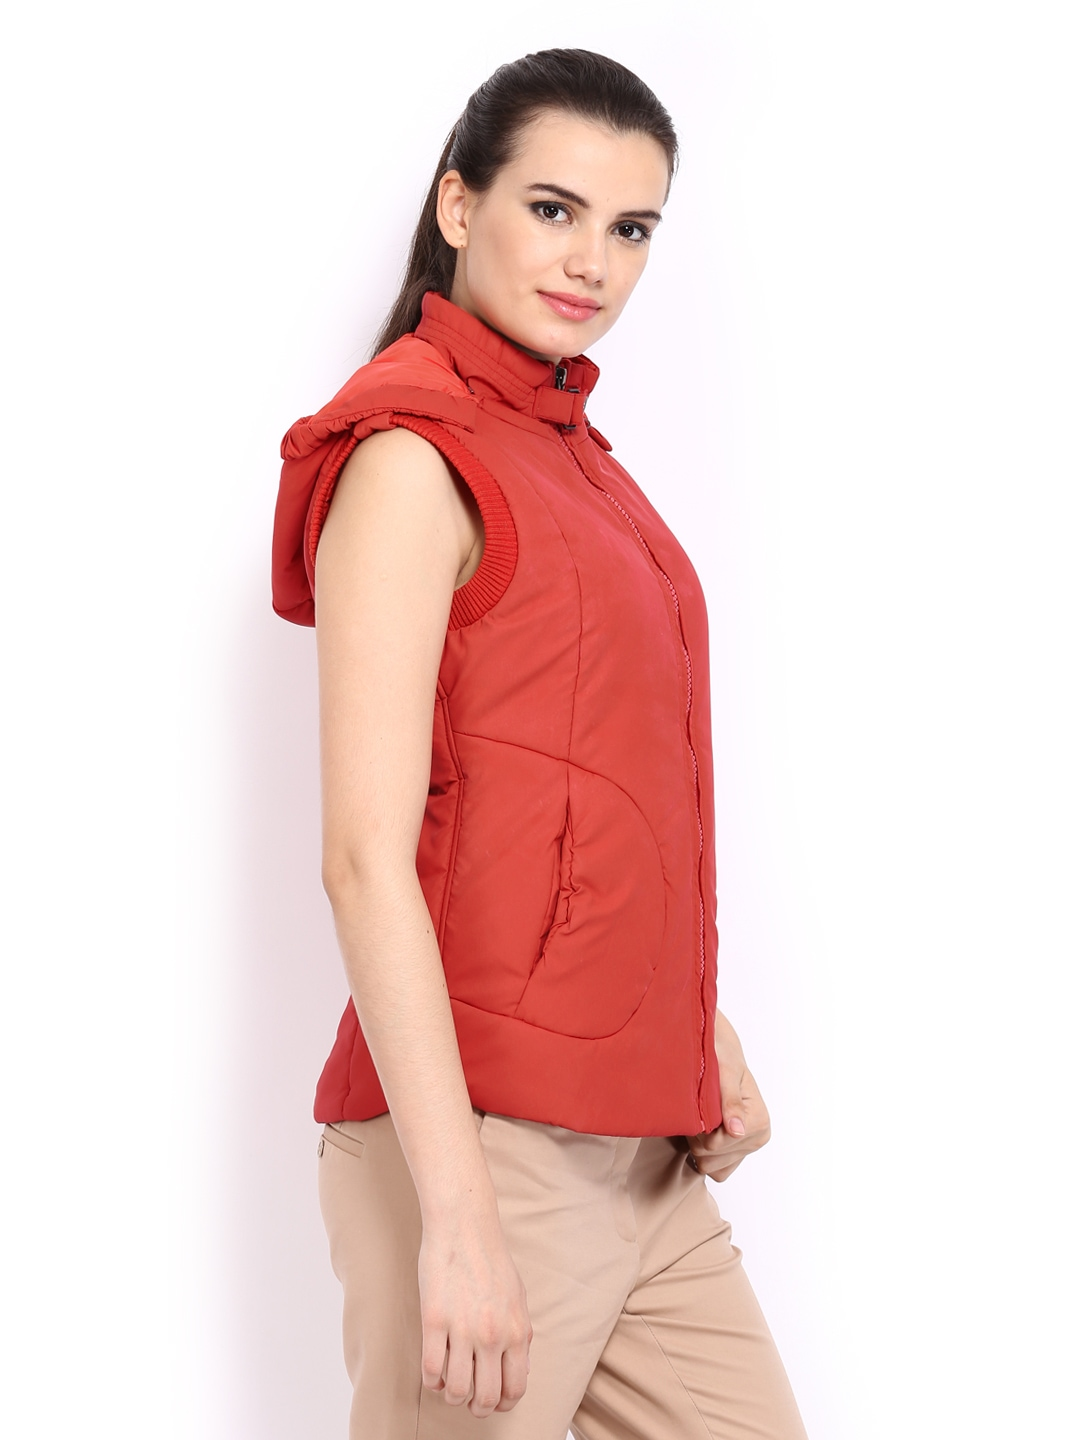 bf9db055c4a Buy Fort Collins Women Red Padded Sleeveless Jacket 1392505 for women  online in india on Myntra at Yebhi.com